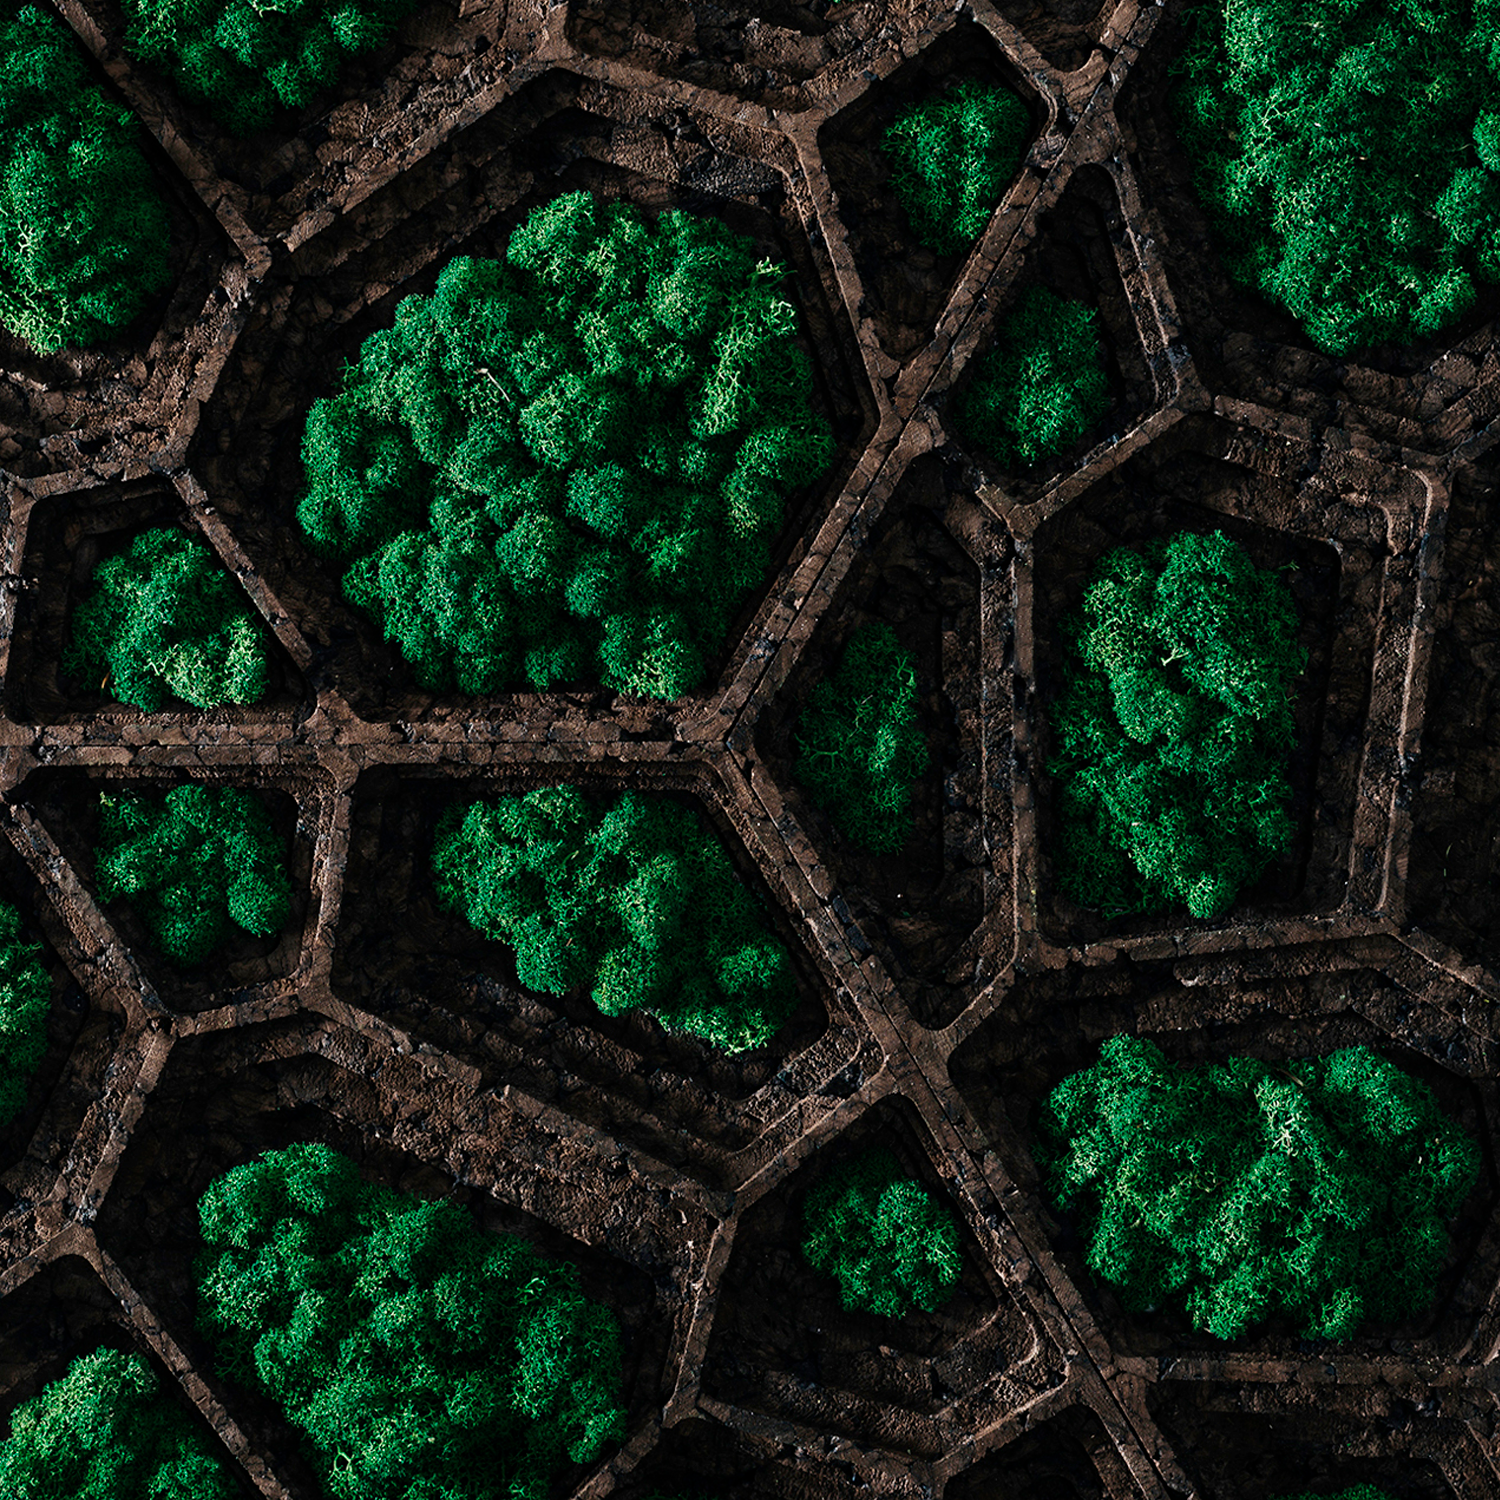 Corkvor Green Wall Panels - Corkvor is a generative pattern based on Voronoi diagram, partitioning of a plane into regions based on the distance to points in a specific subset of the plane. This principle creates a set of topologic voids,  a perfect hub for green lichens. The hexagonal shape allows combining each module in different ways, getting different variations and aesthetics.  GENCORK is a brand that explores the symbiosis between low-tech material and high-tech processes. The 100% natural and sustainable expanded cork agglomerate is transformed through generative design algorithms and advanced digital fabrication processes, expressing a new formal aesthetics. This creative and disruptive system not only optimizes cork's thermal and acoustic properties but also adds artistic value to traditional walls. | Matter of Stuff